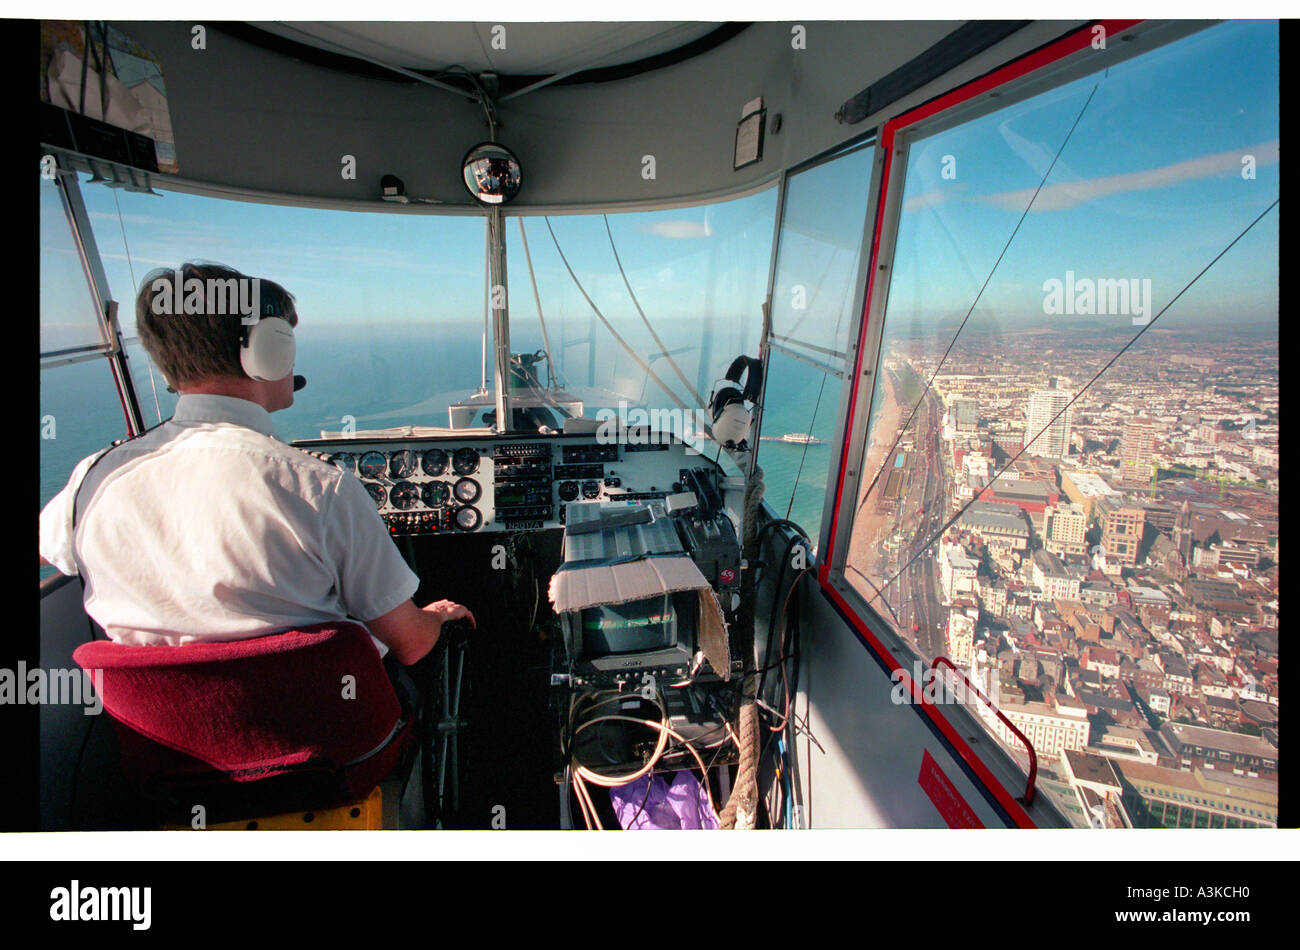 Police airship on surveilance duty over the south coast of England Stock Photo